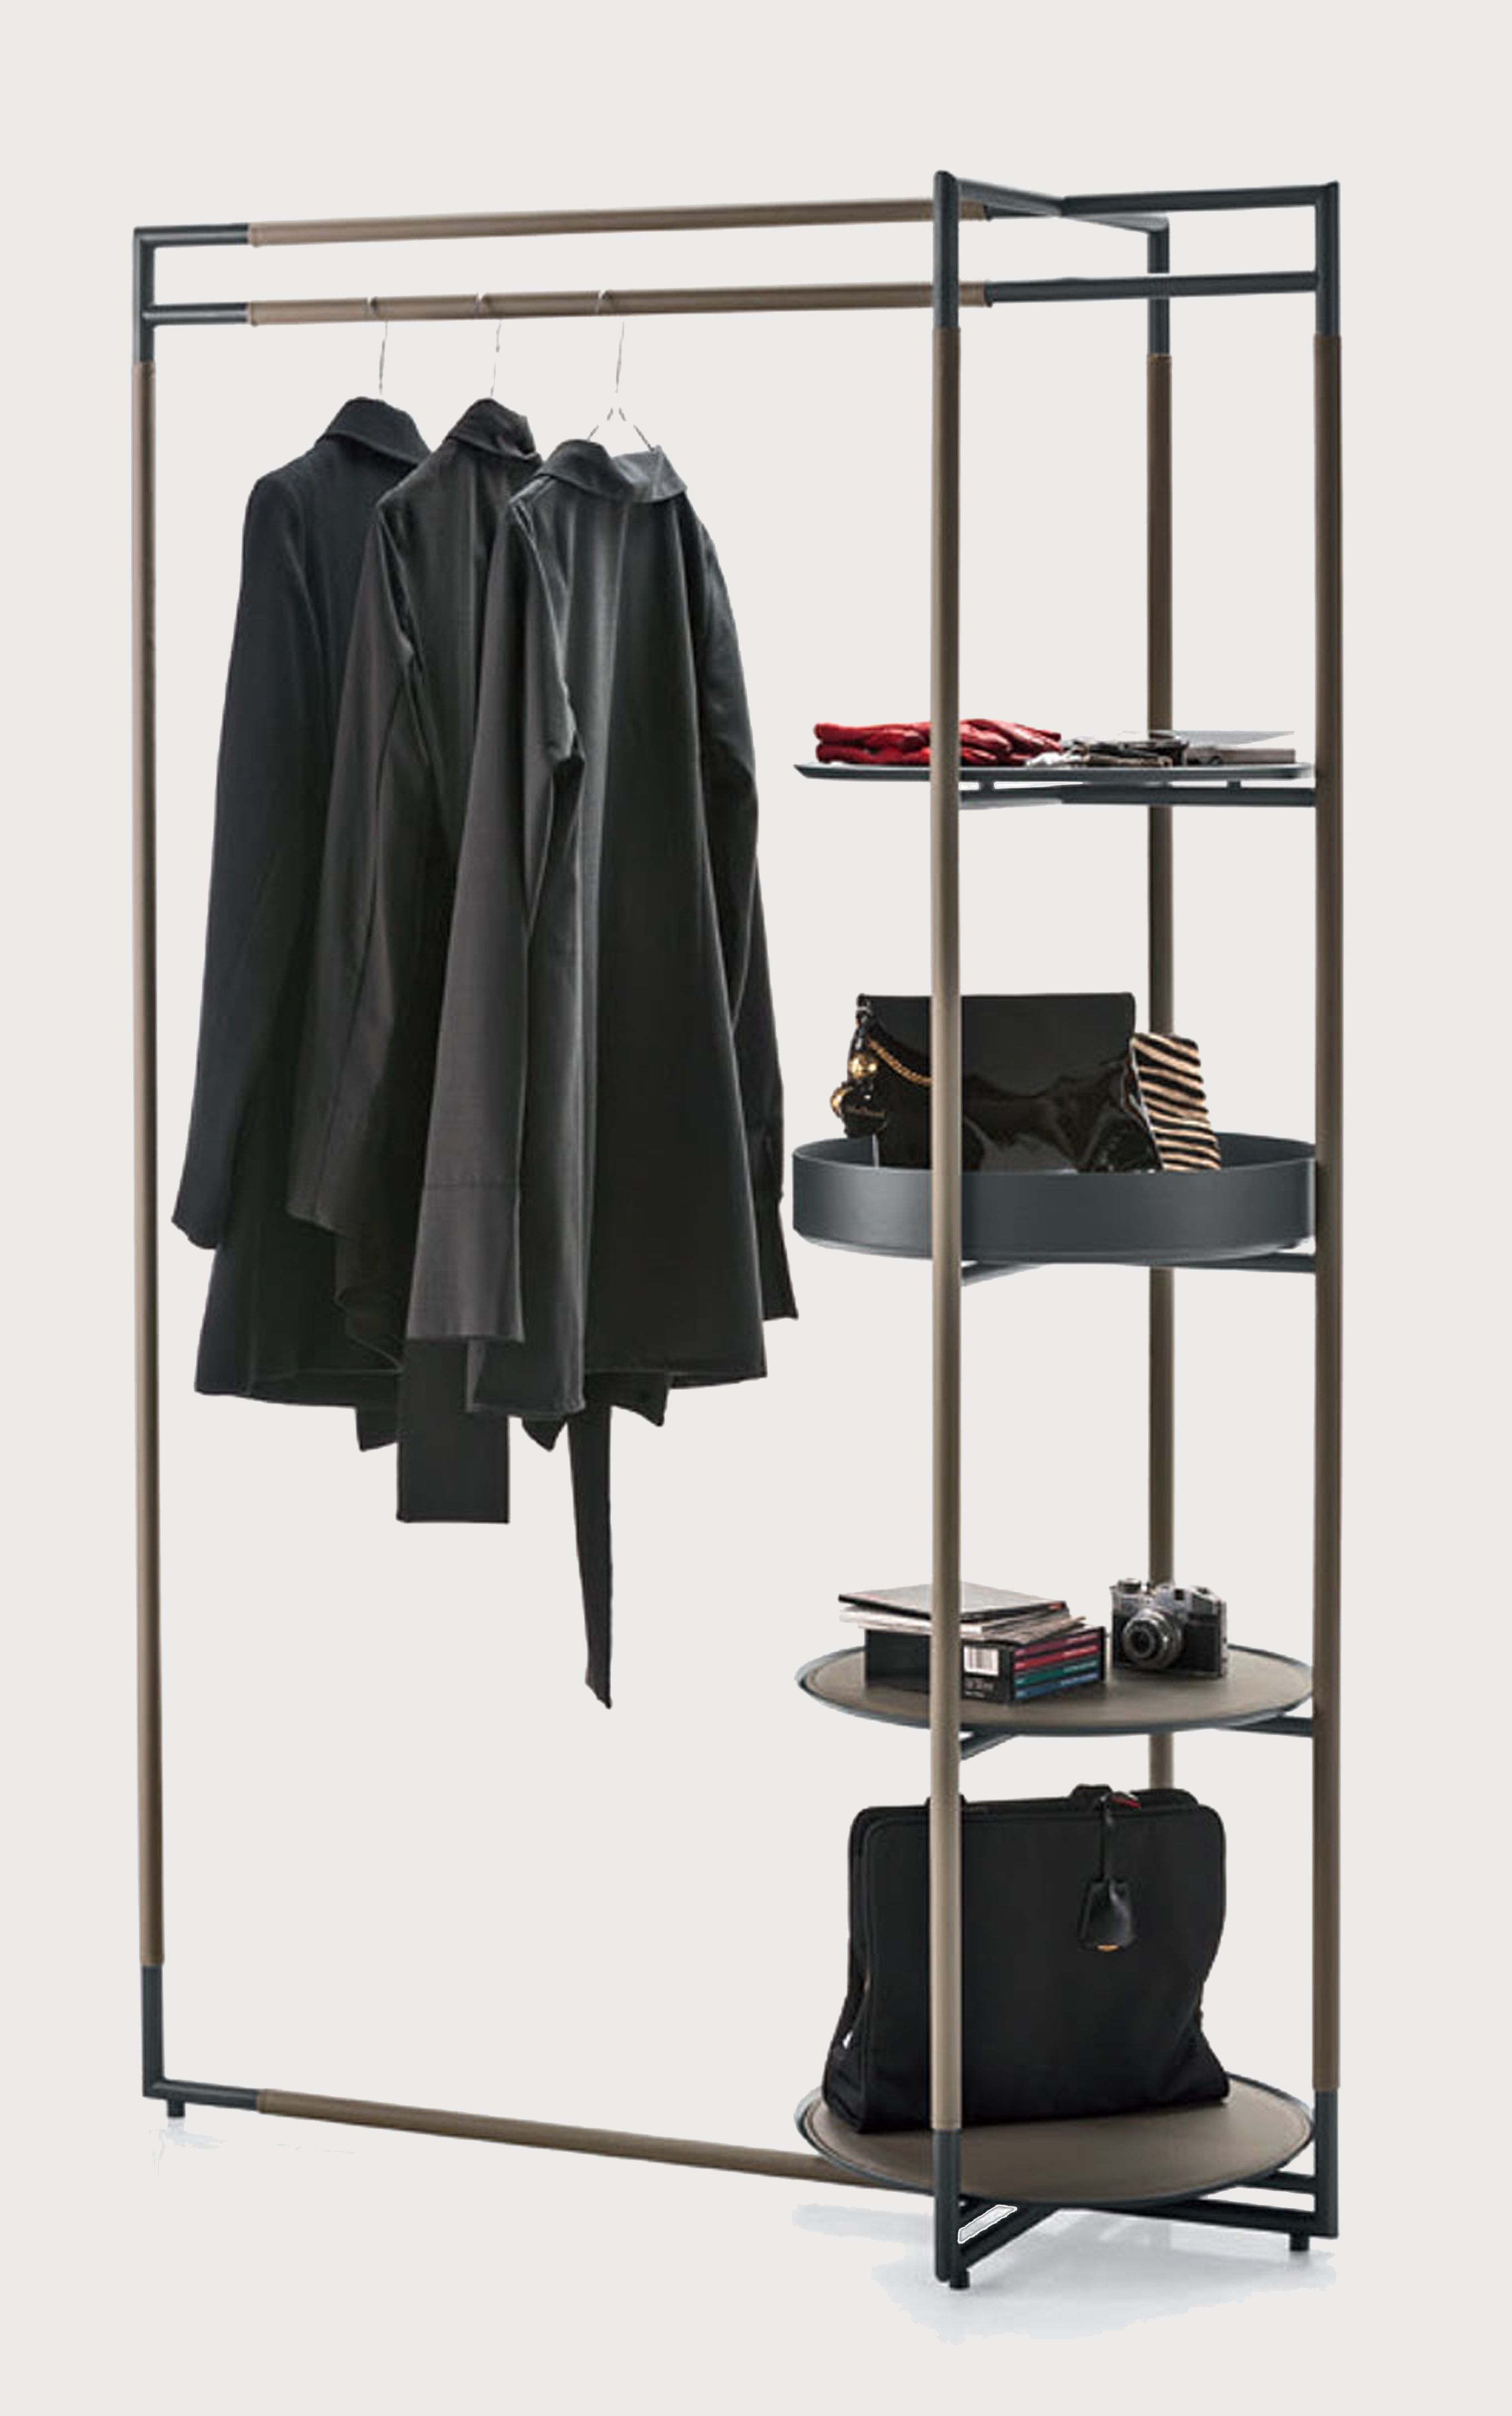 home closet telescopic valet design ideas rod